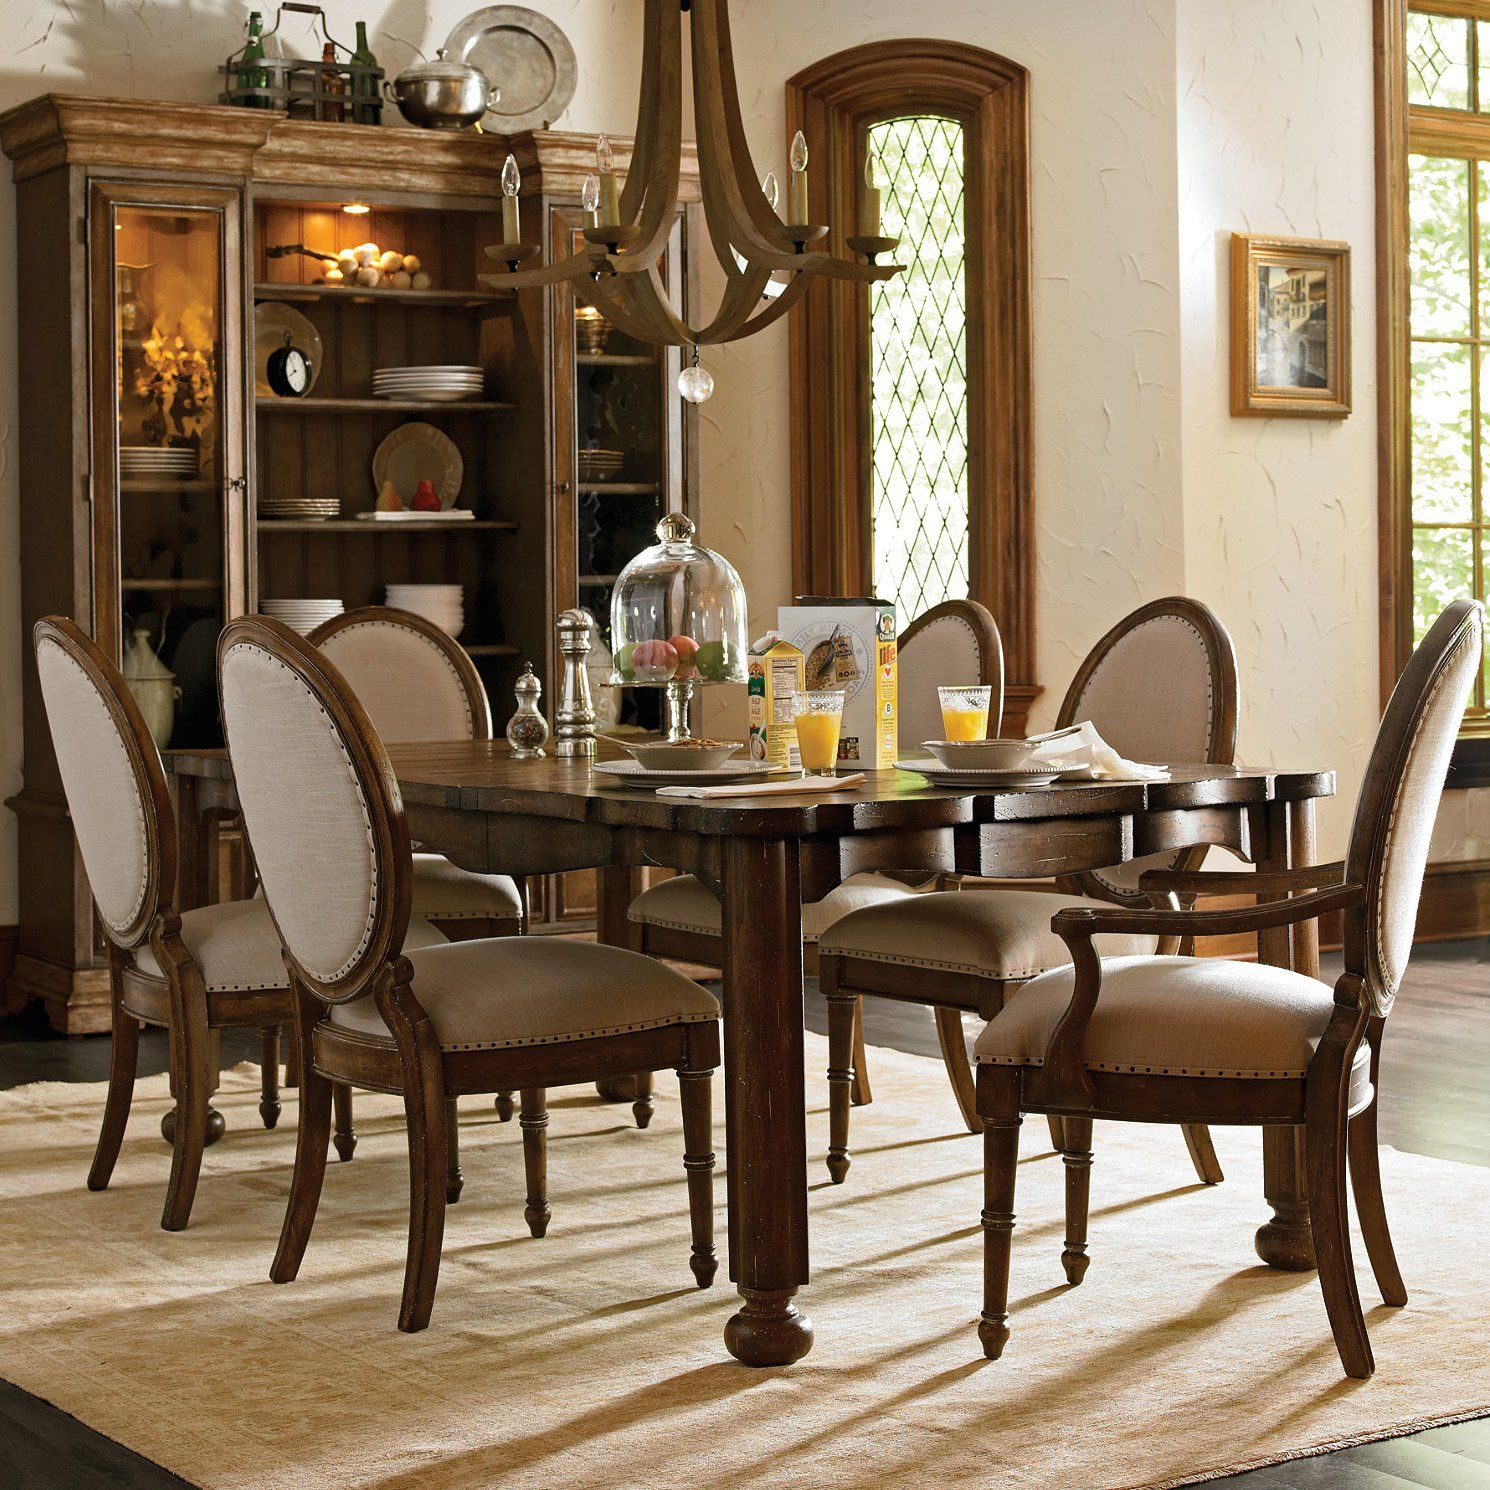 Stanley European Farmhouse 7 Piece Dining Set From Hayneedle Com